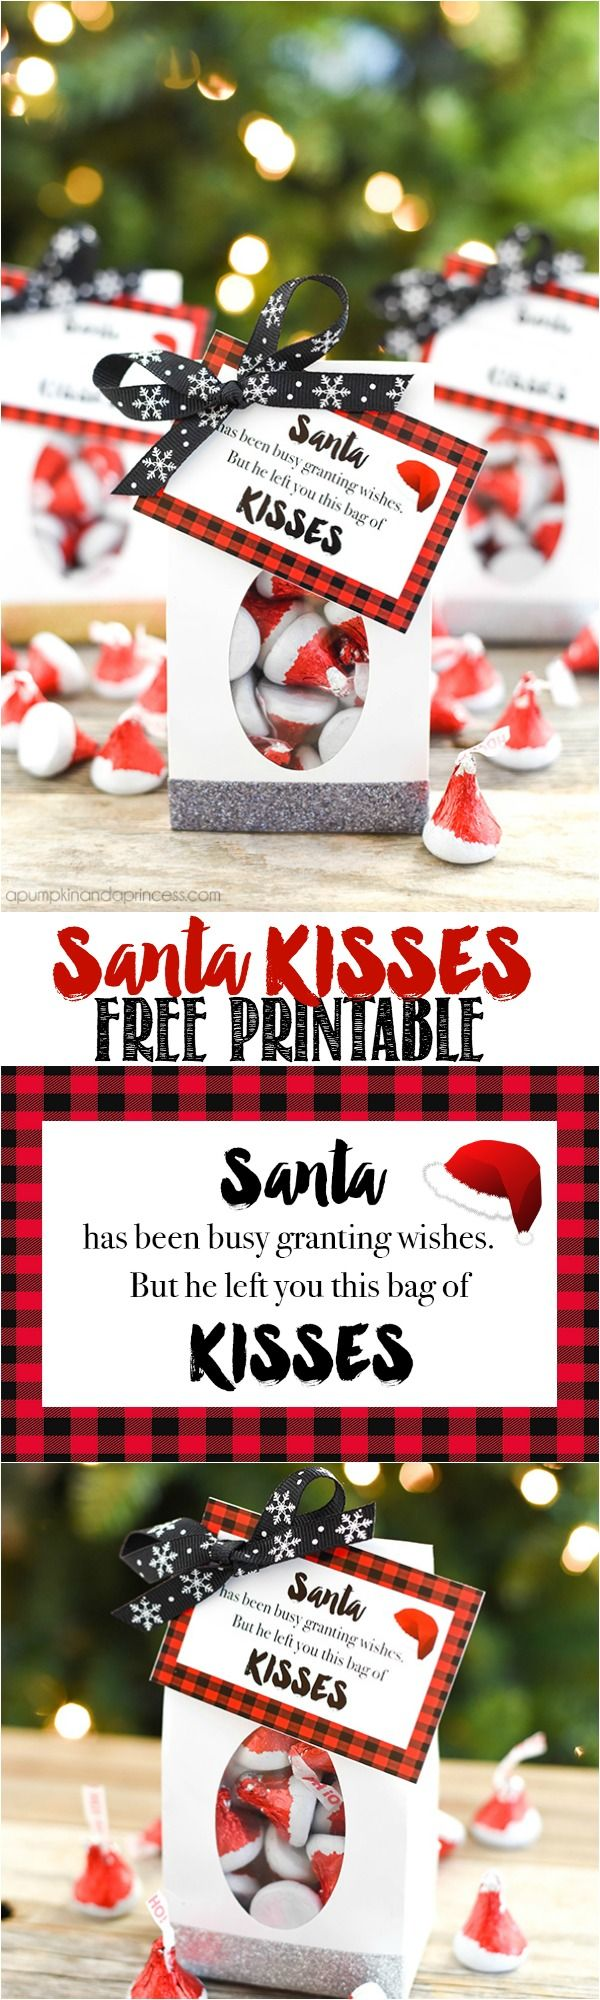 santa-kisses-printable-treat-bags